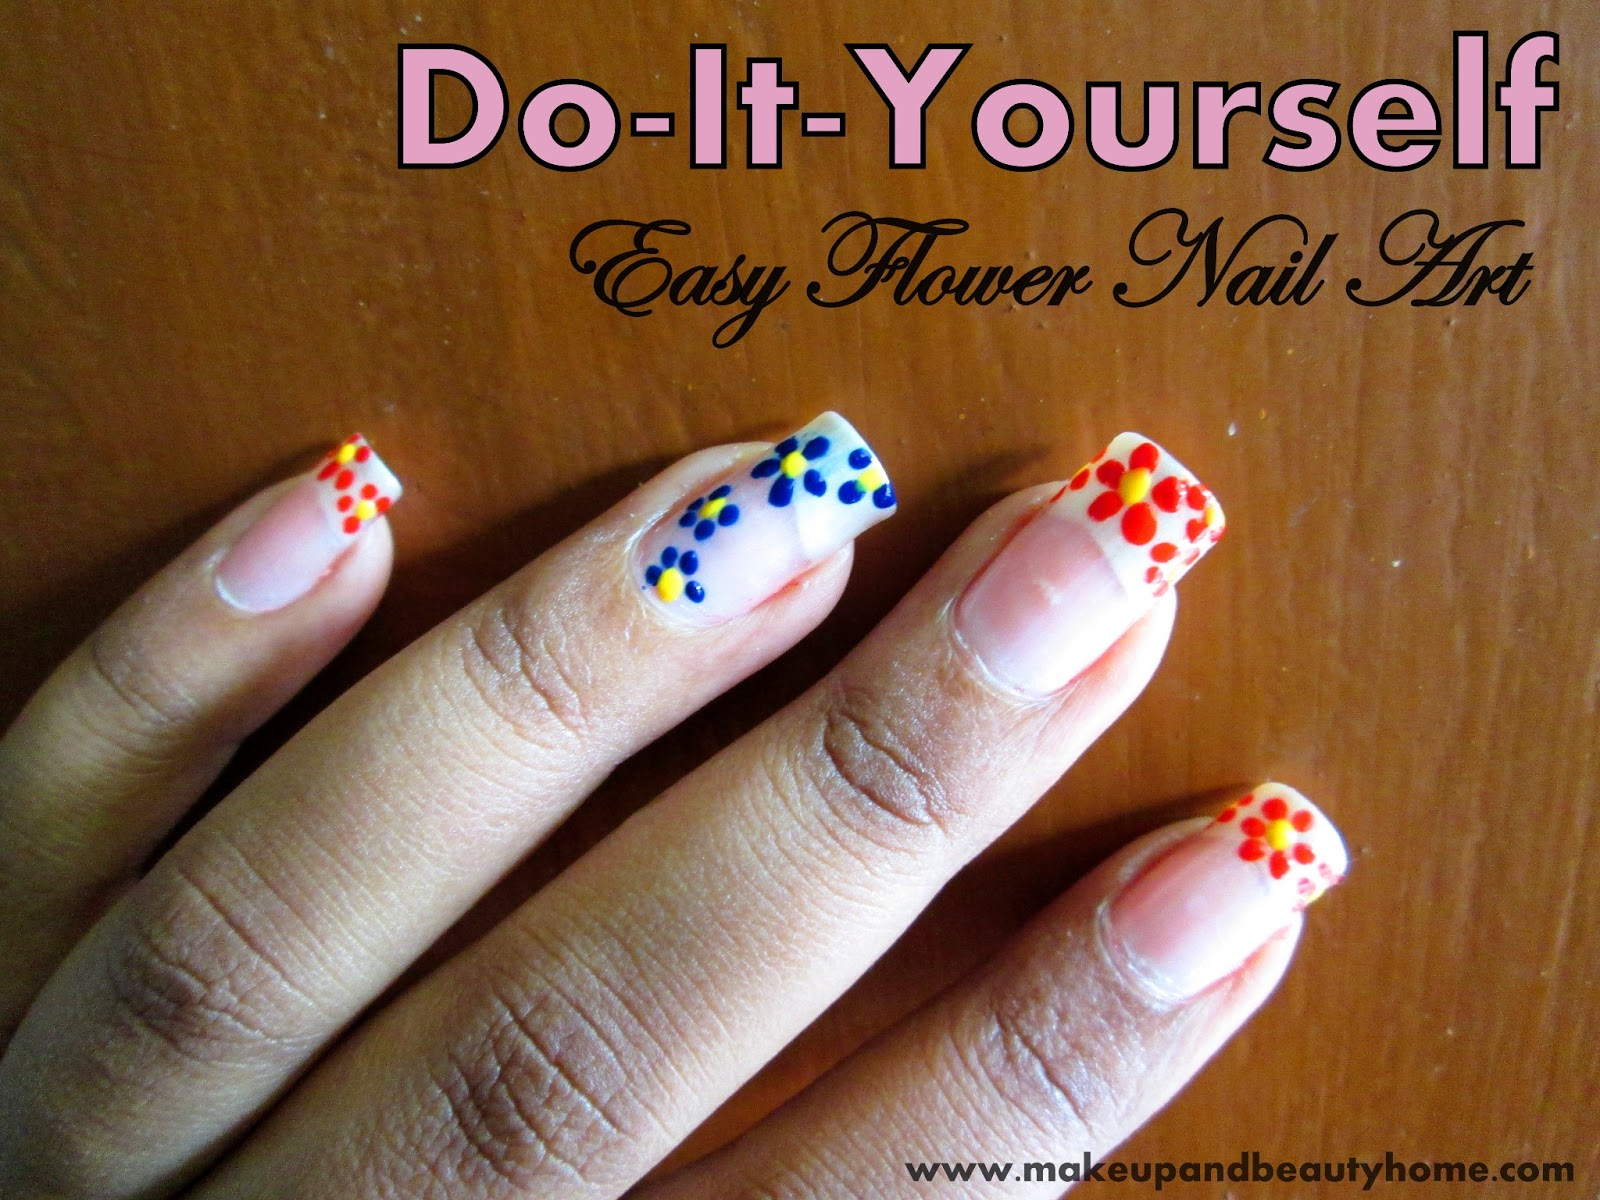 do it yourself easy flower nail art 6 easy steps makeup and beauty